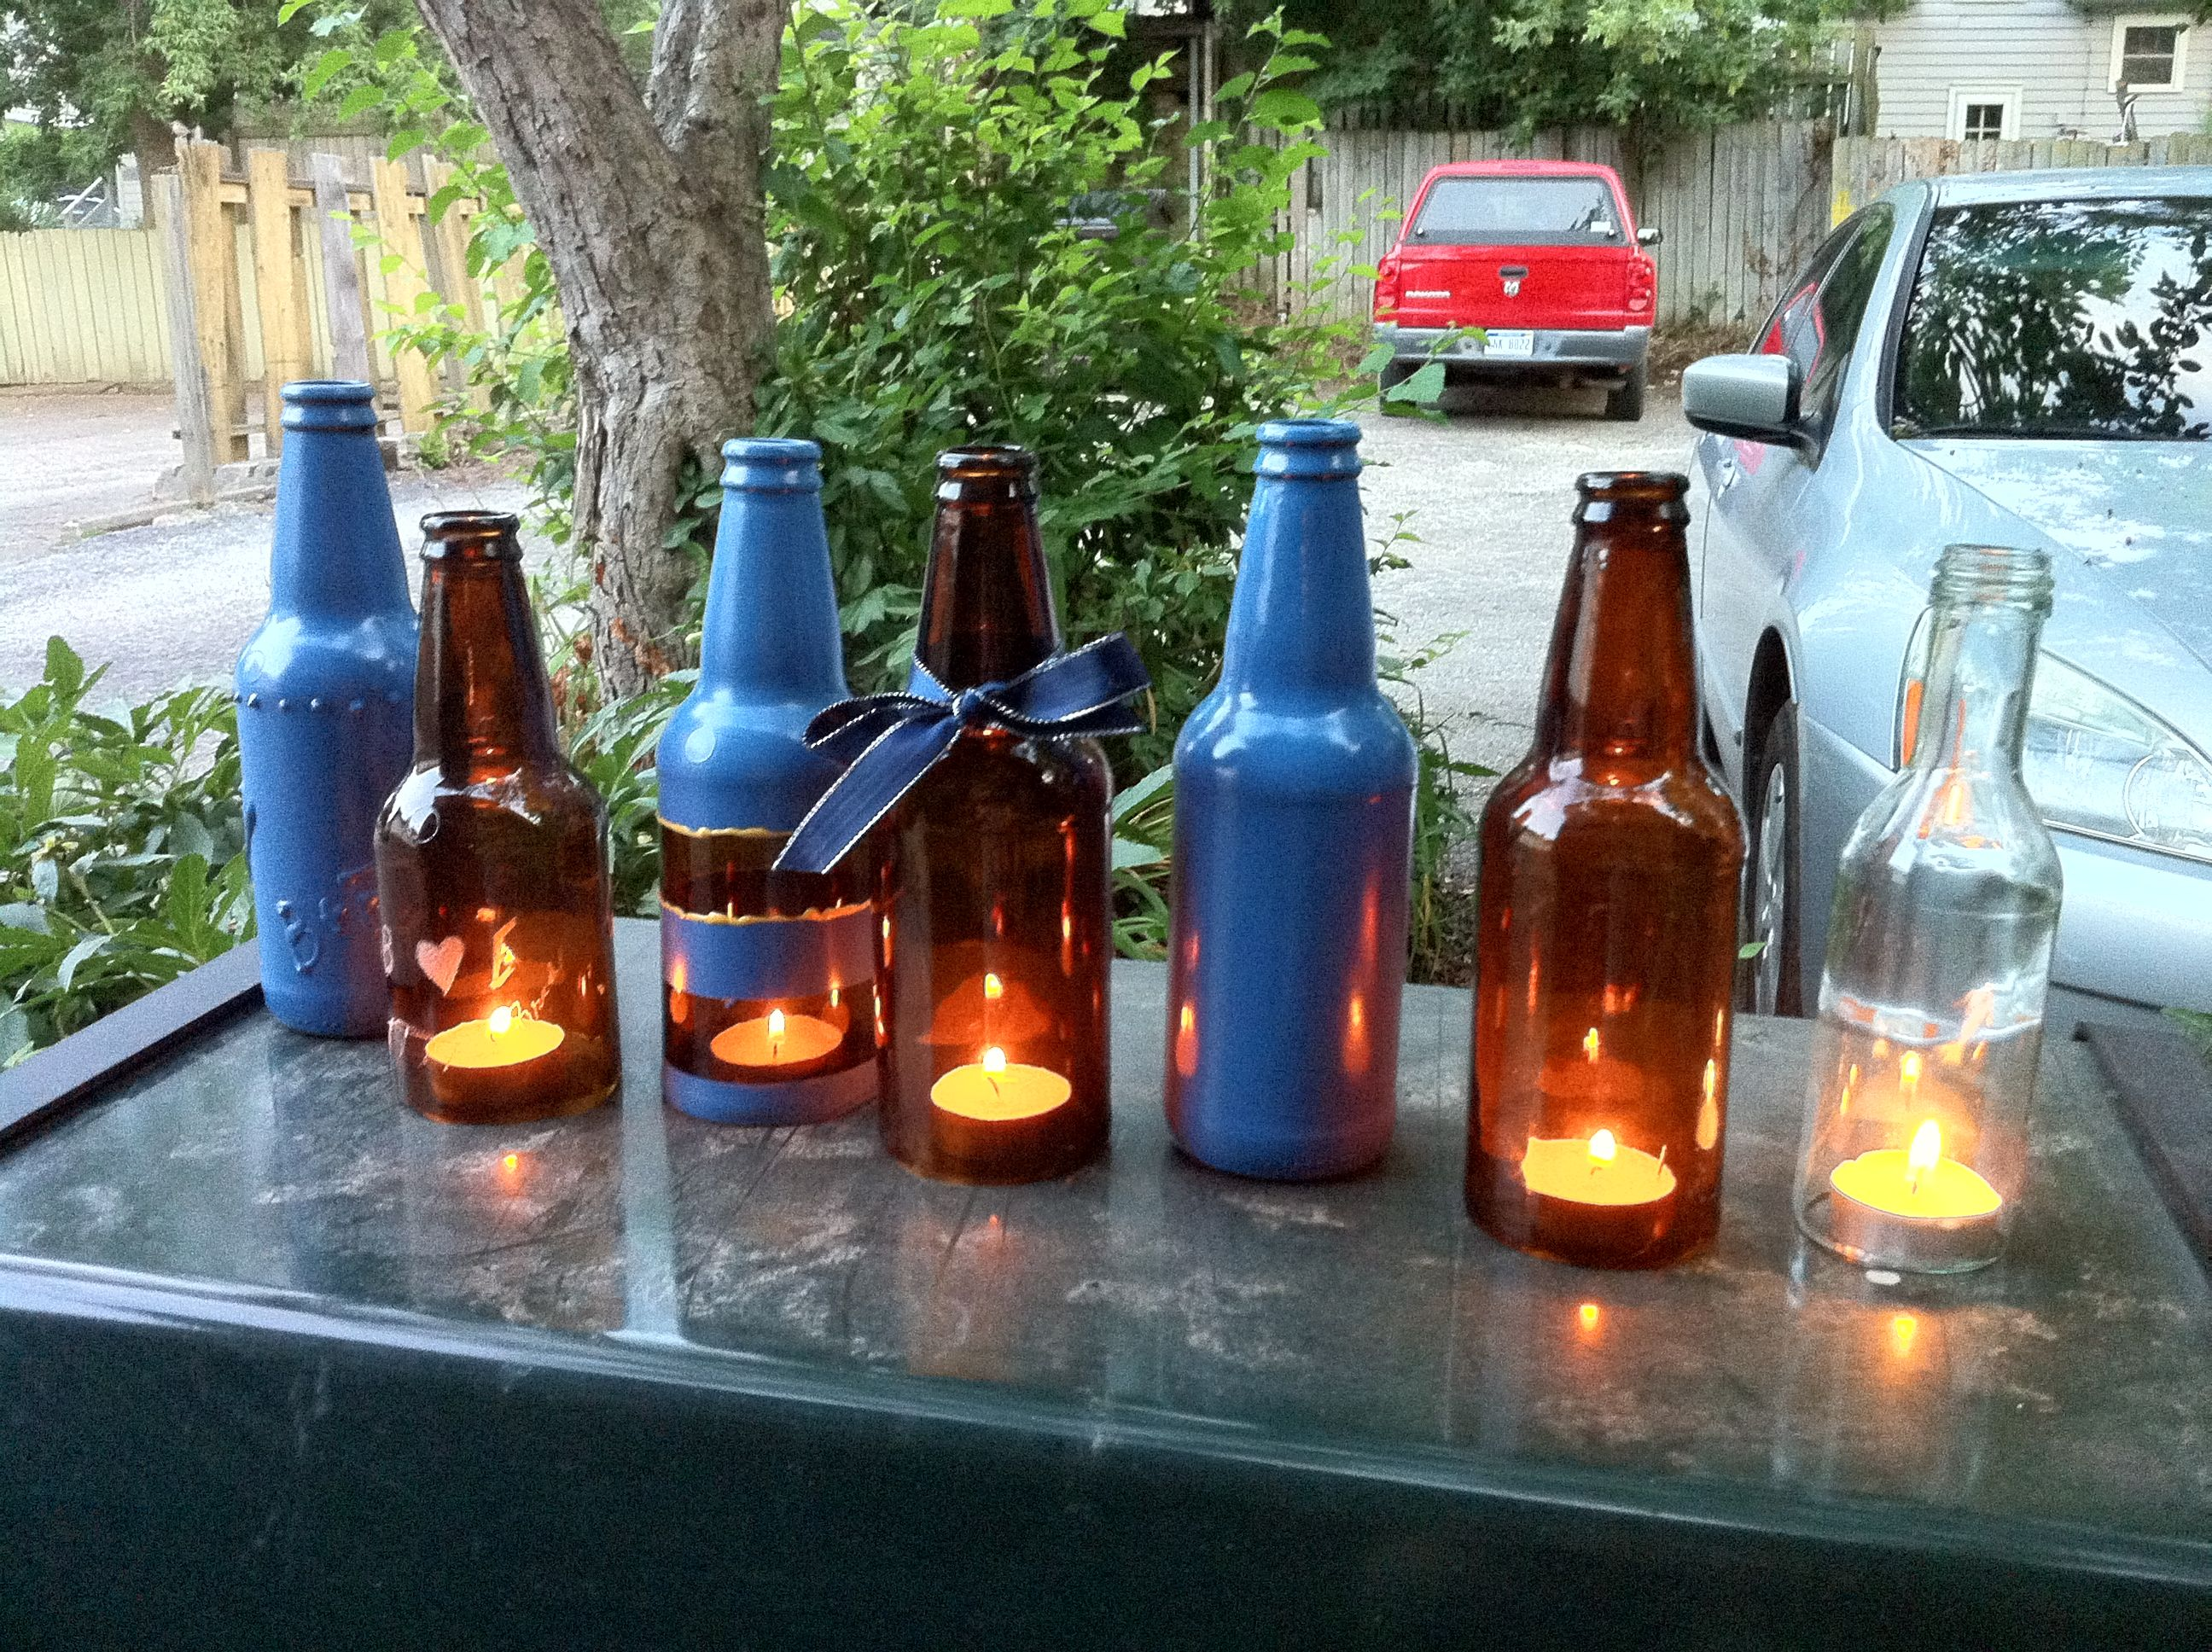 beer bottle decoration ideas prototypes price geiss